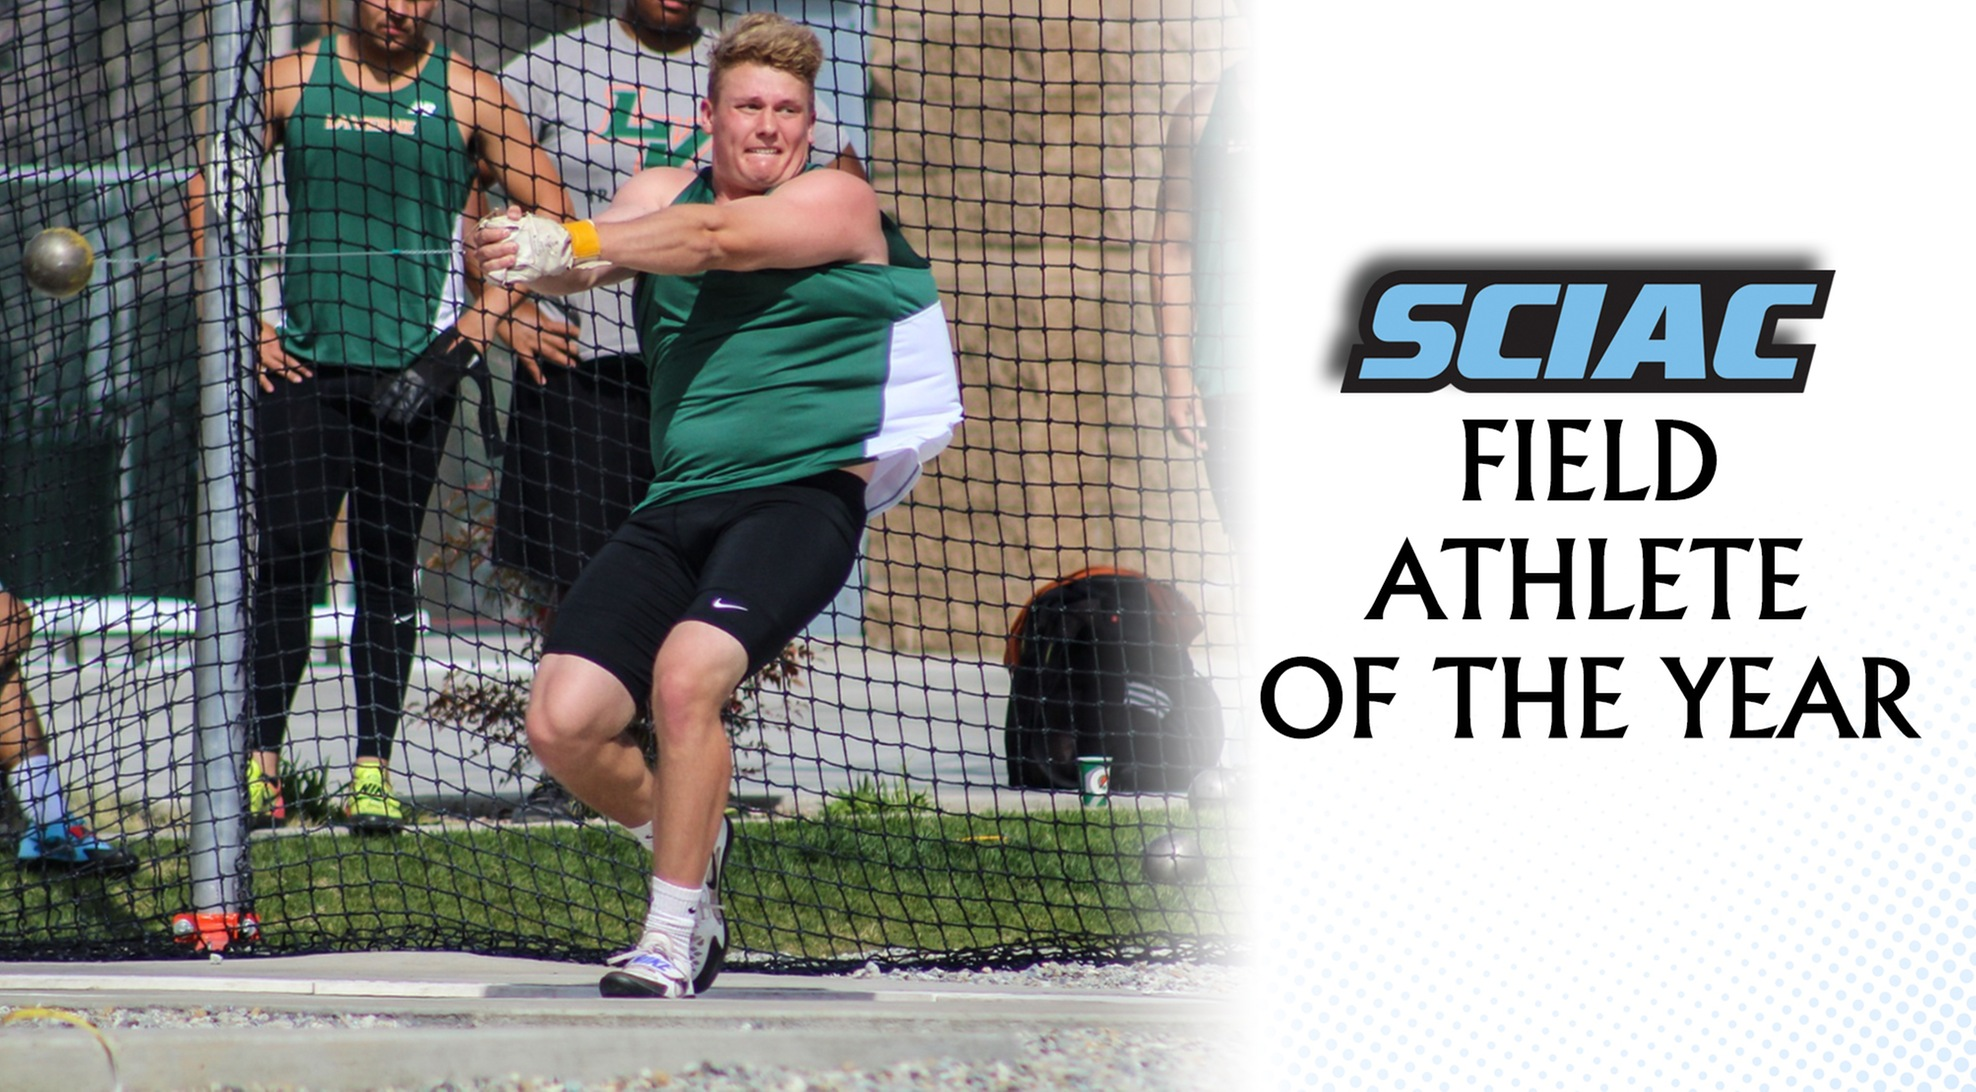 Randall named SCIAC Field Athlete of the Year